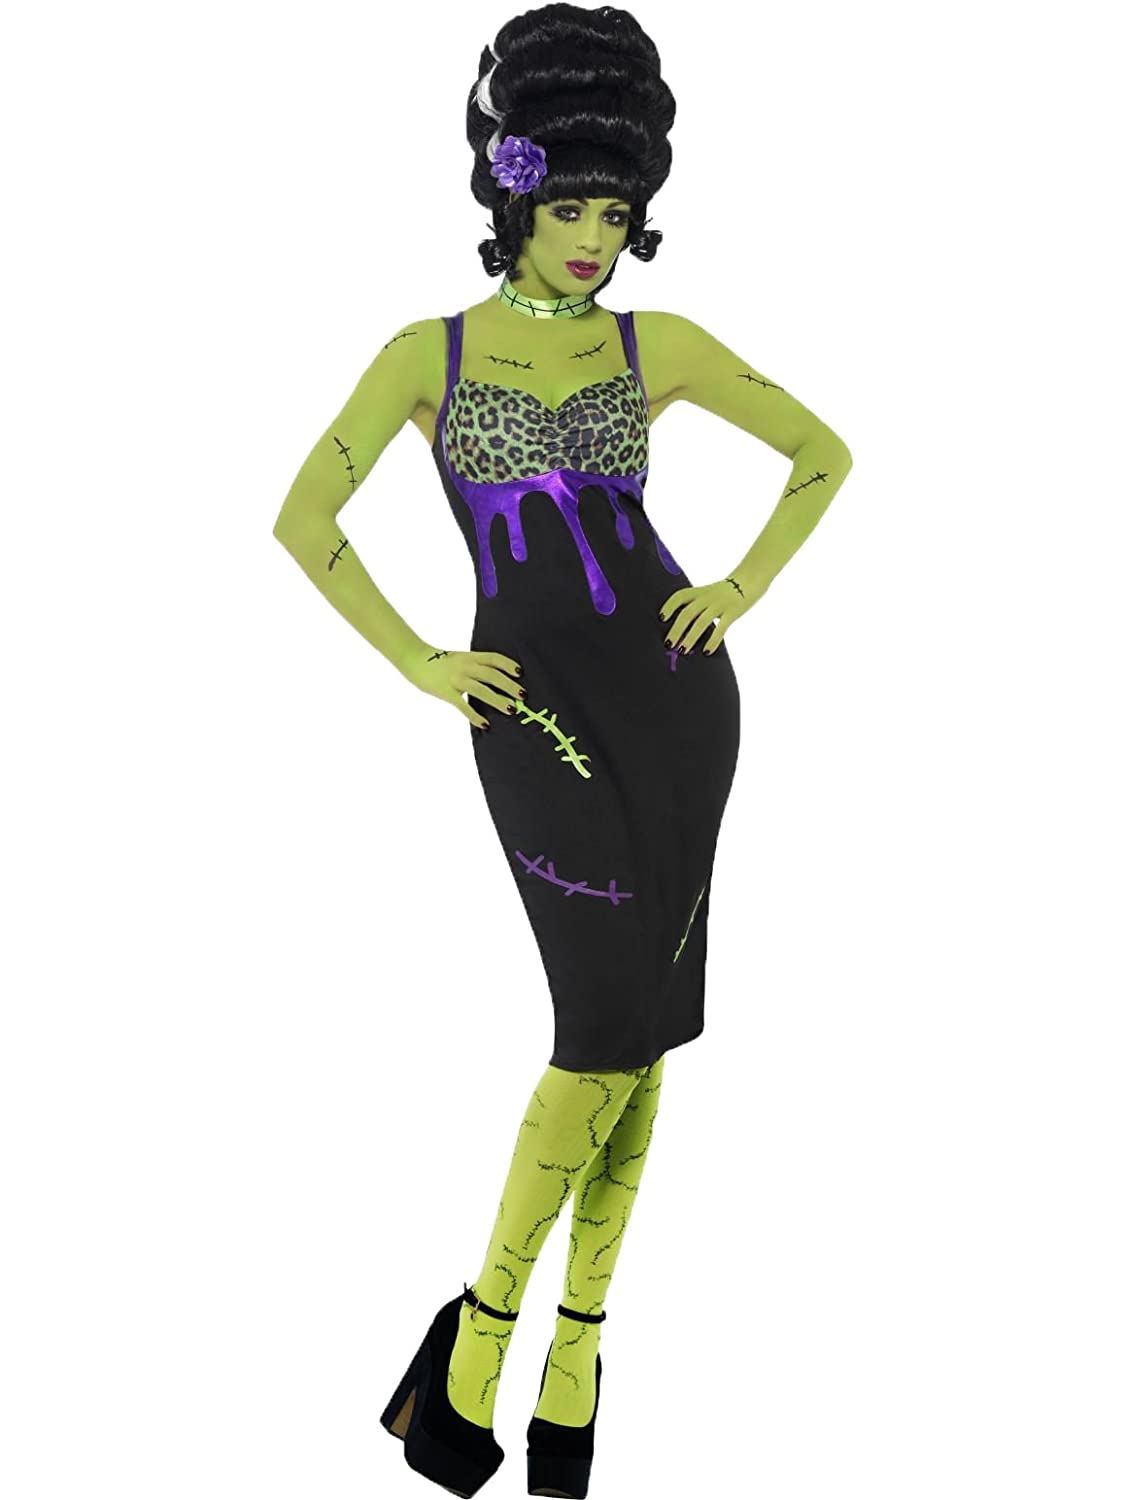 pin-up Girl Costume Dress frankie Size l: Amazon.es: Juguetes y juegos